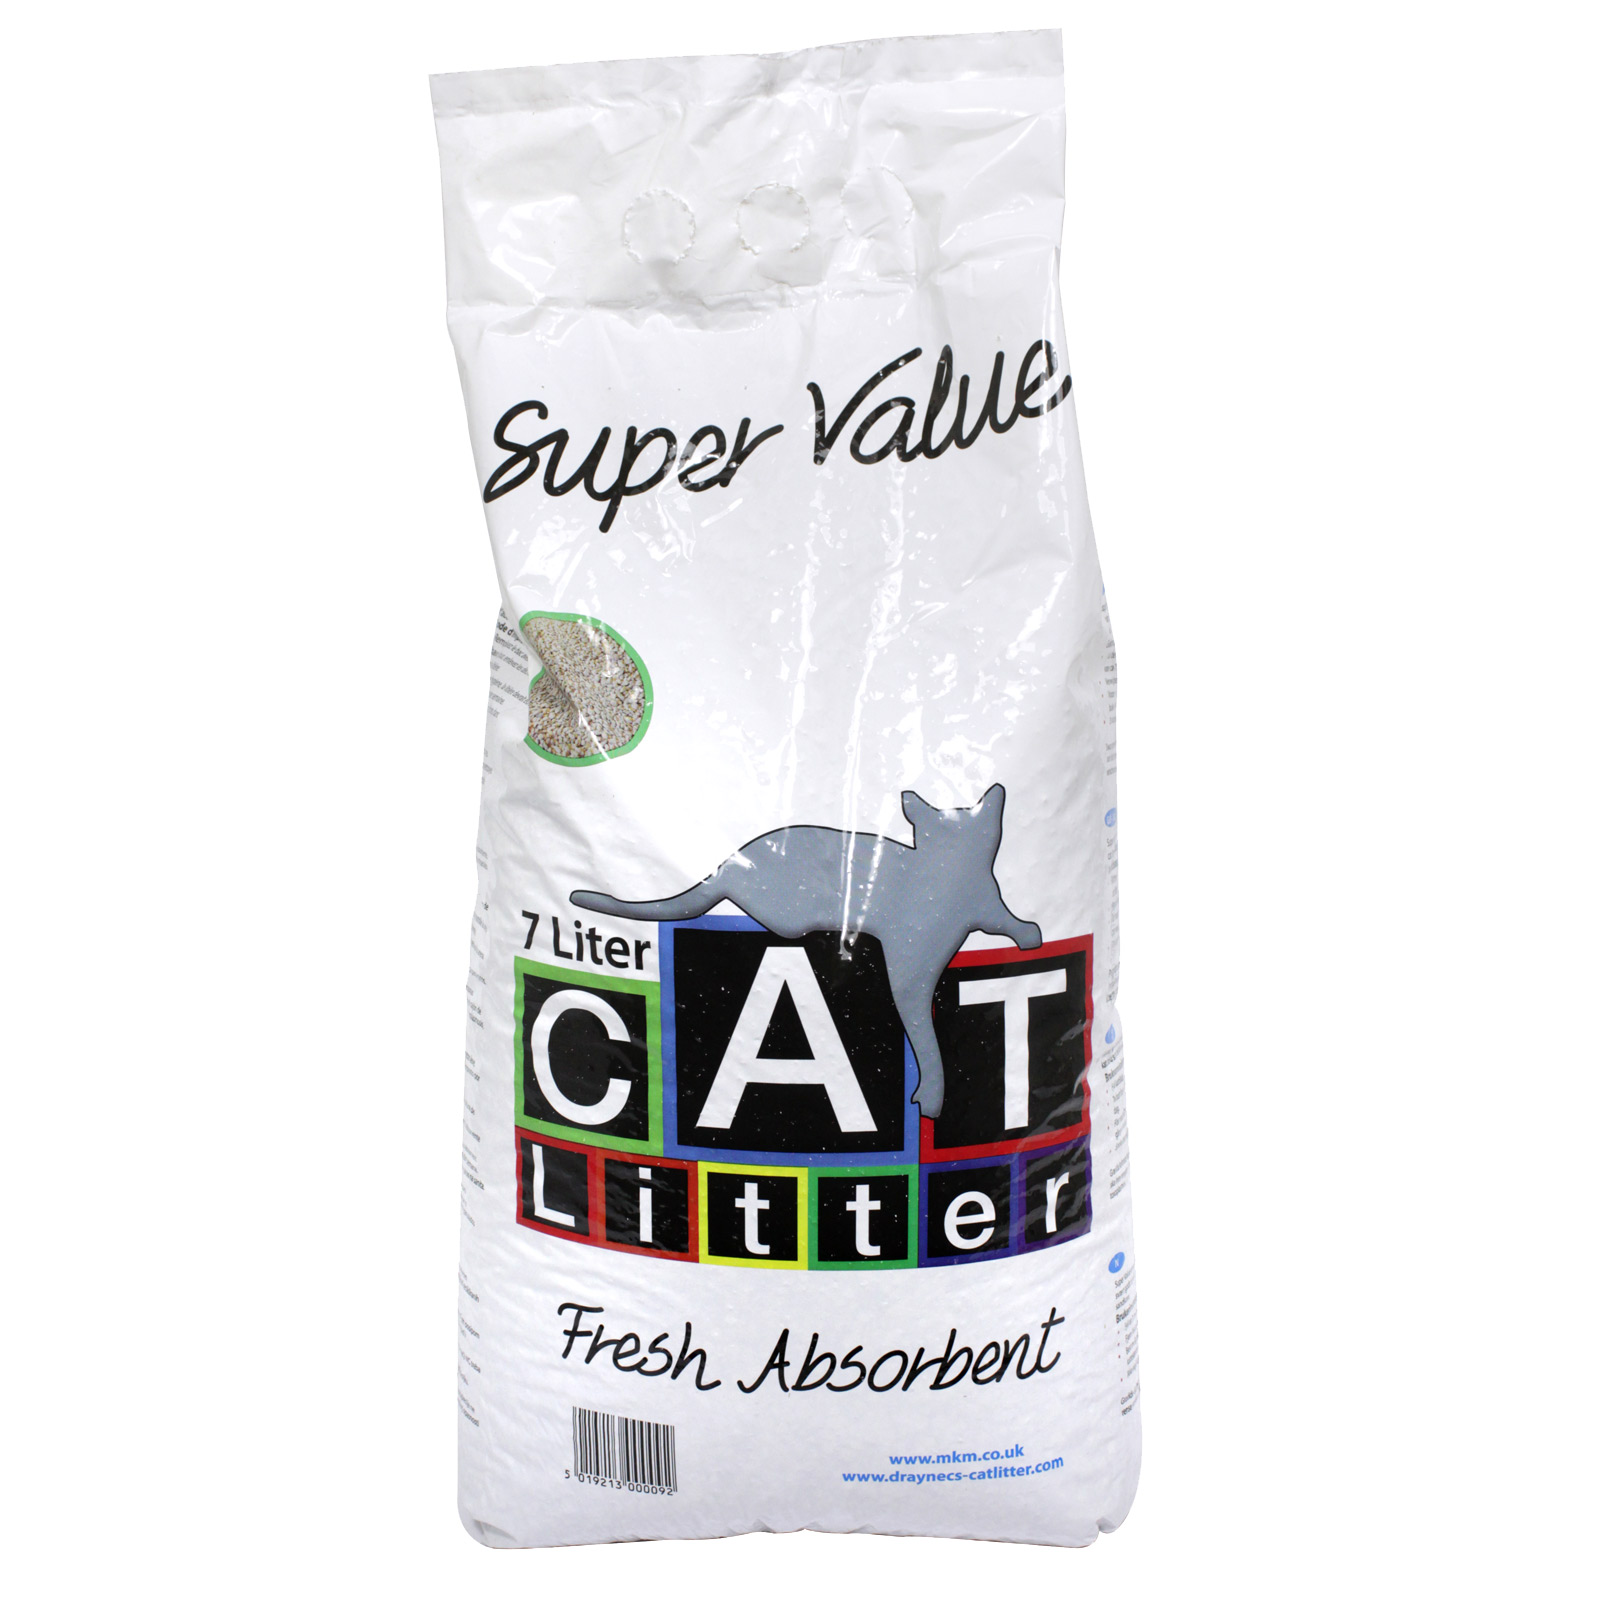 SUPERVALUE CAT LITTER 7L